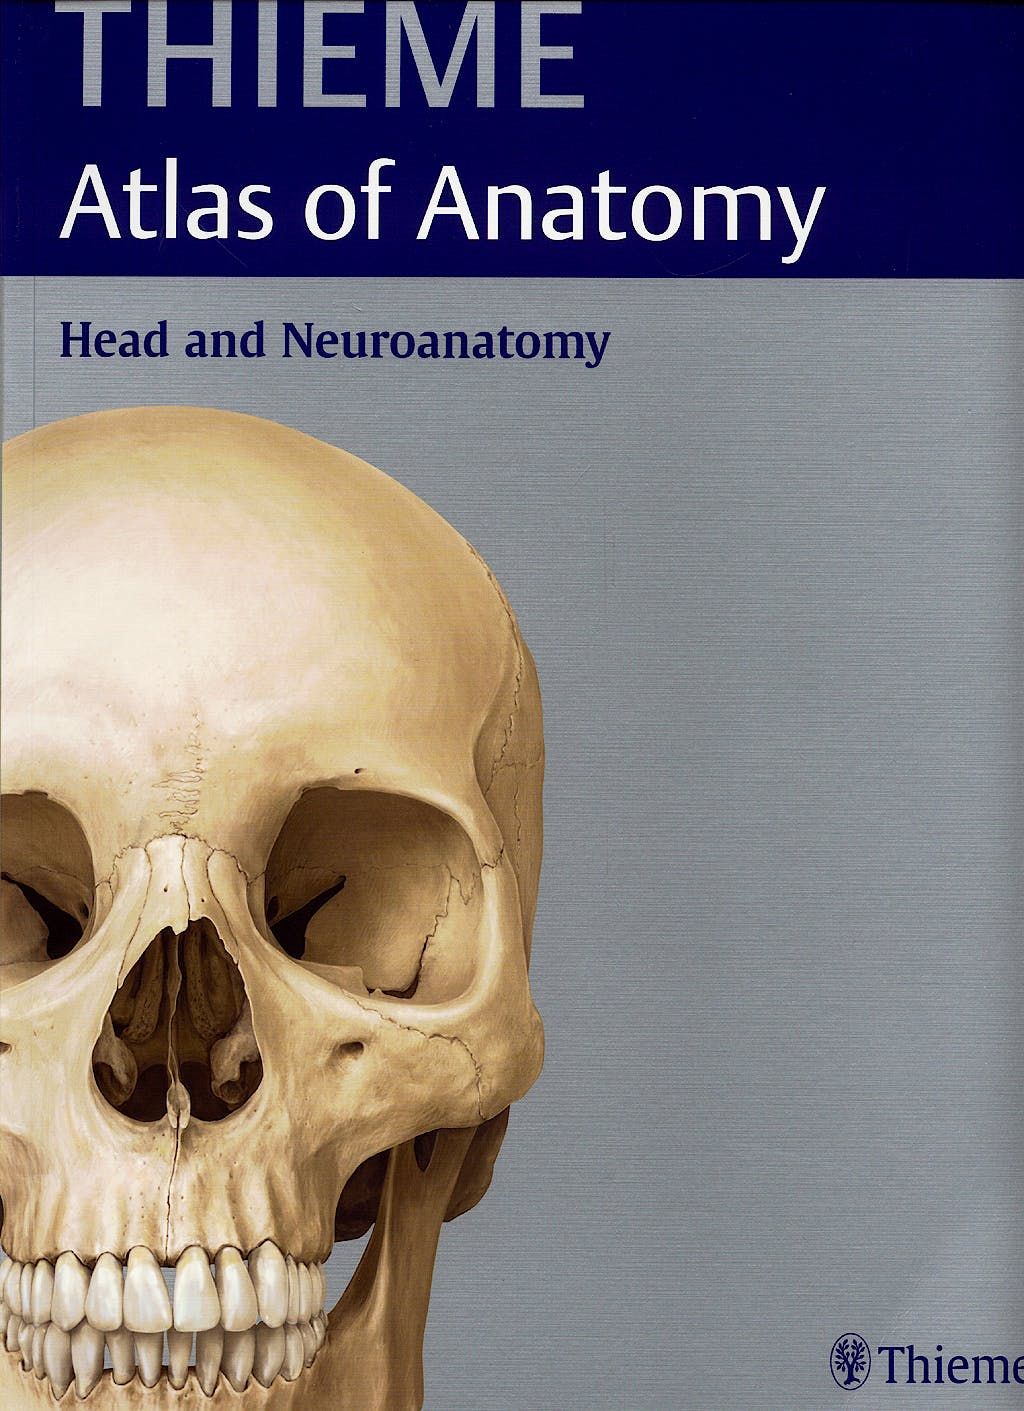 Producto: Thieme Atlas of Anatomy. Head and Neuroanatomy